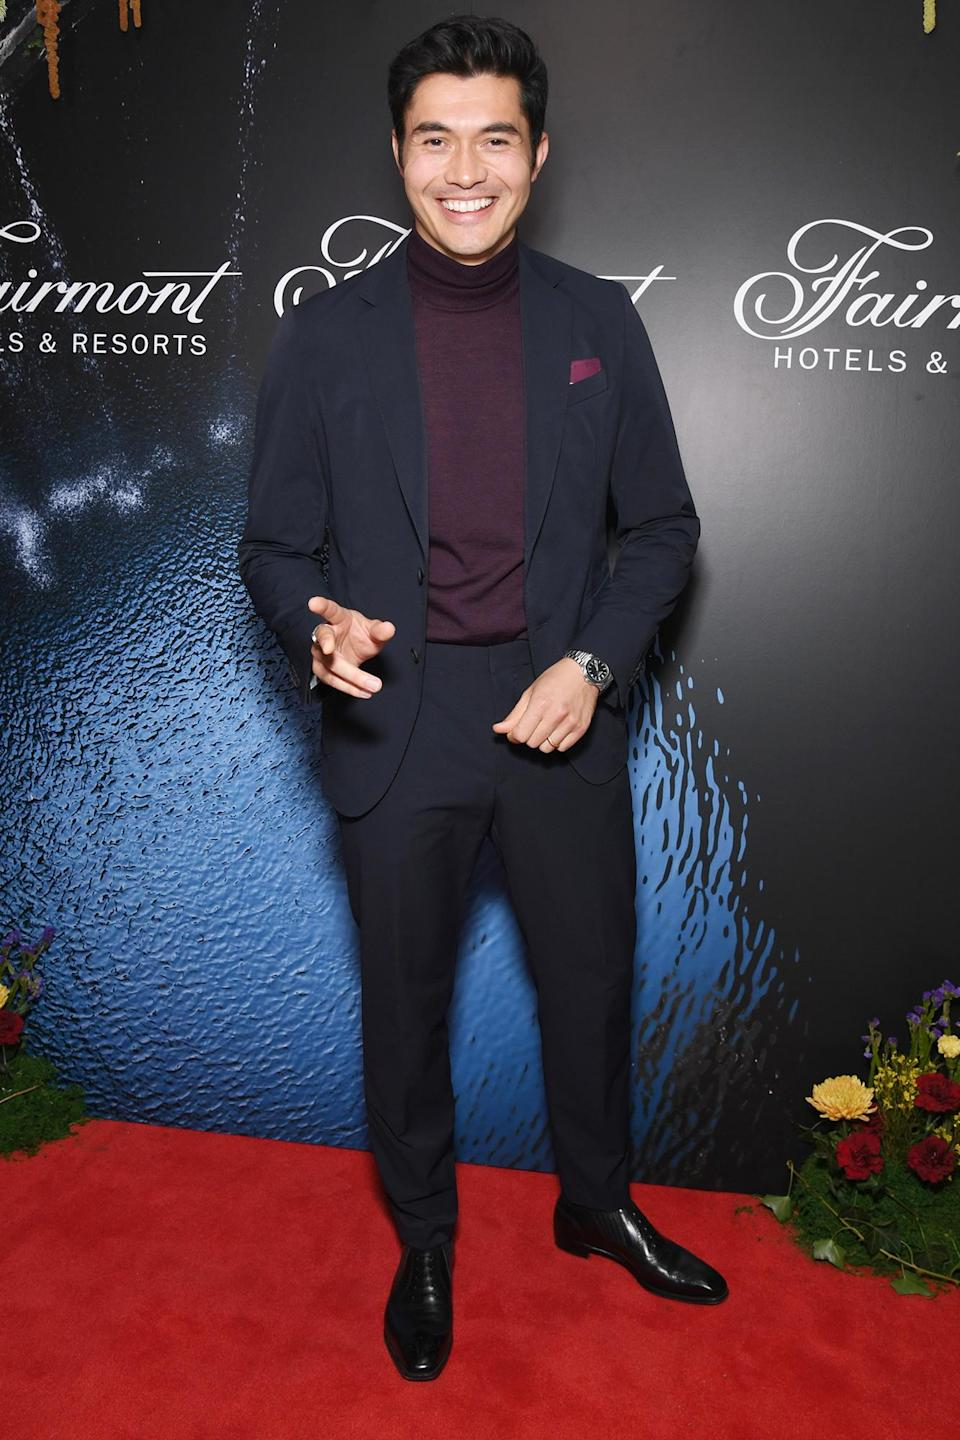 """<p>Henry Golding looks dapper at the Fairmont Hotels & Resorts """"That Fairmont Feeling"""" event on Oct. 7 in N.Y.C. </p>"""